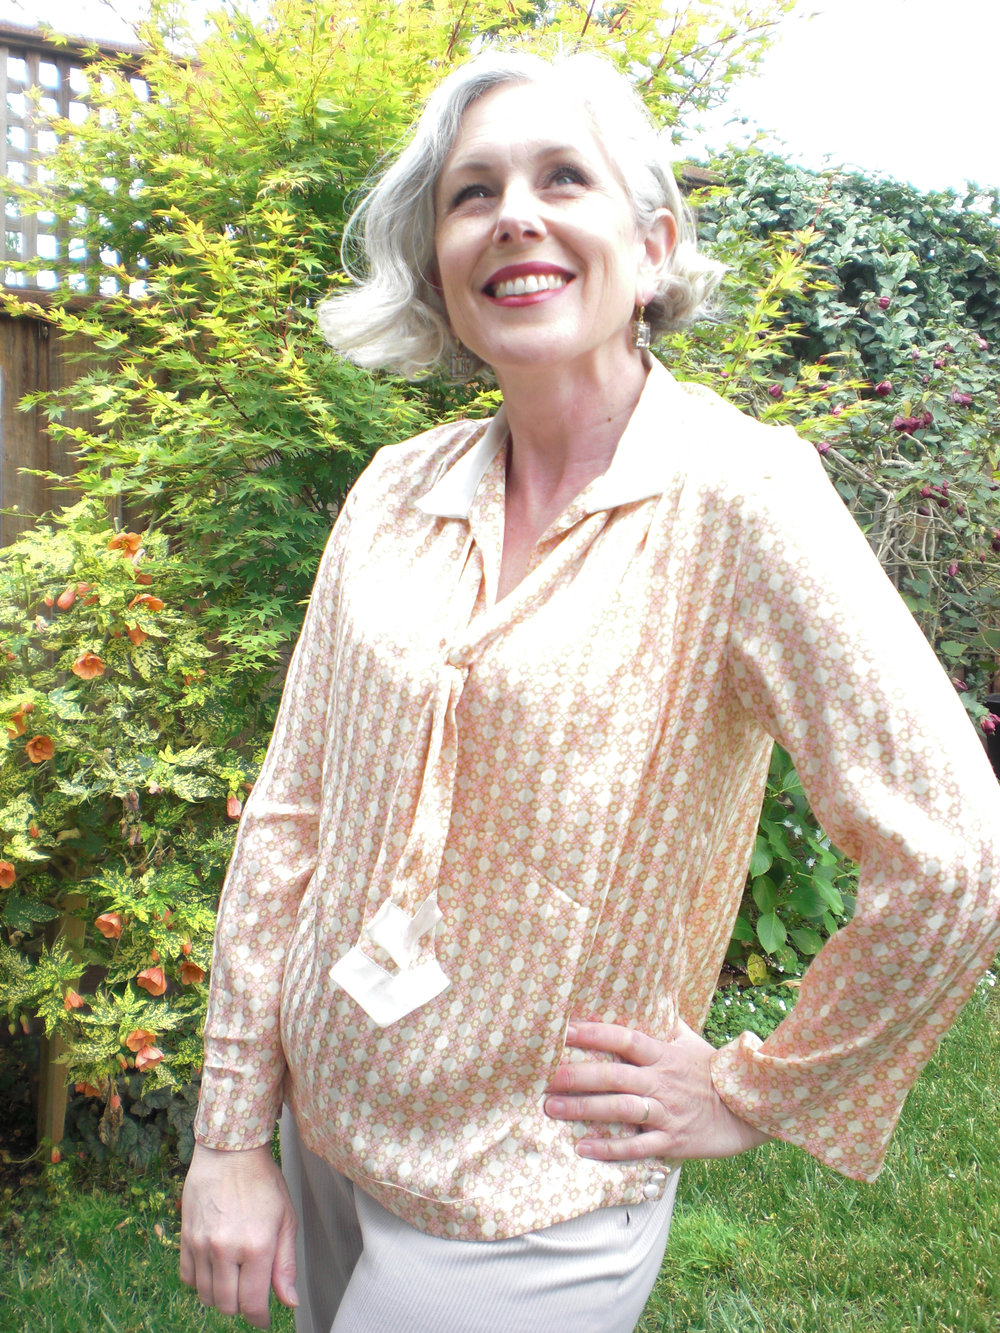 Here is my Finished Blouse 1.  I love it and wear it all the time!